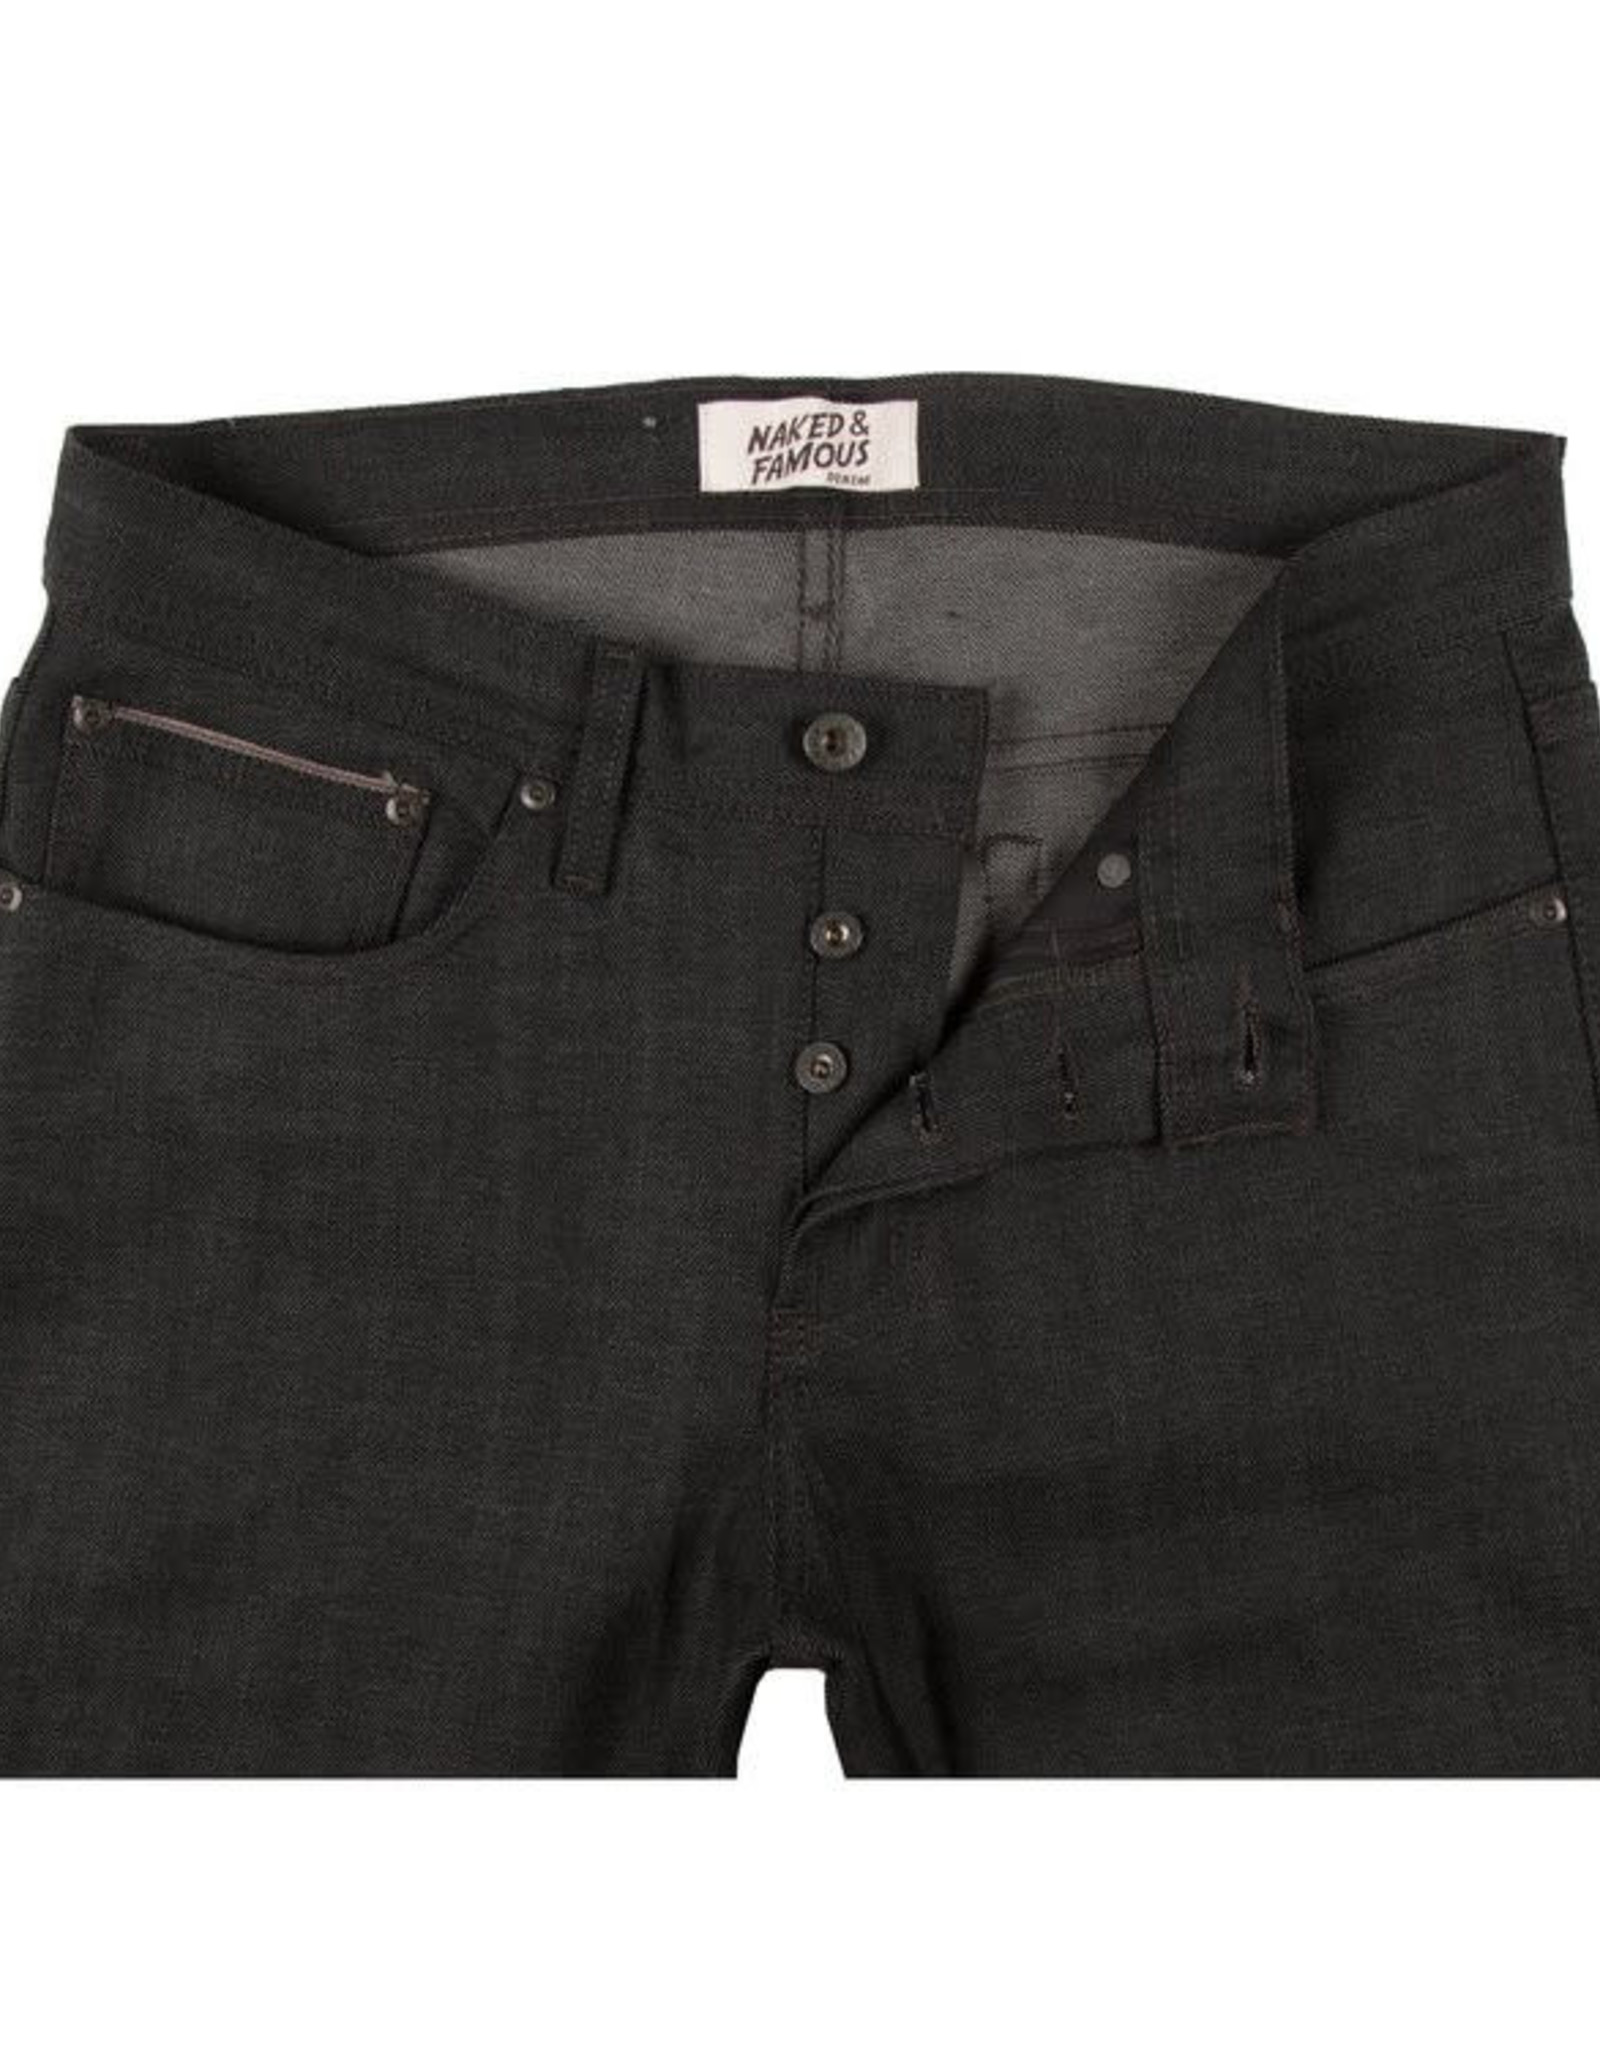 Naked and Famous Jeans Weird Guy Naked & Famous